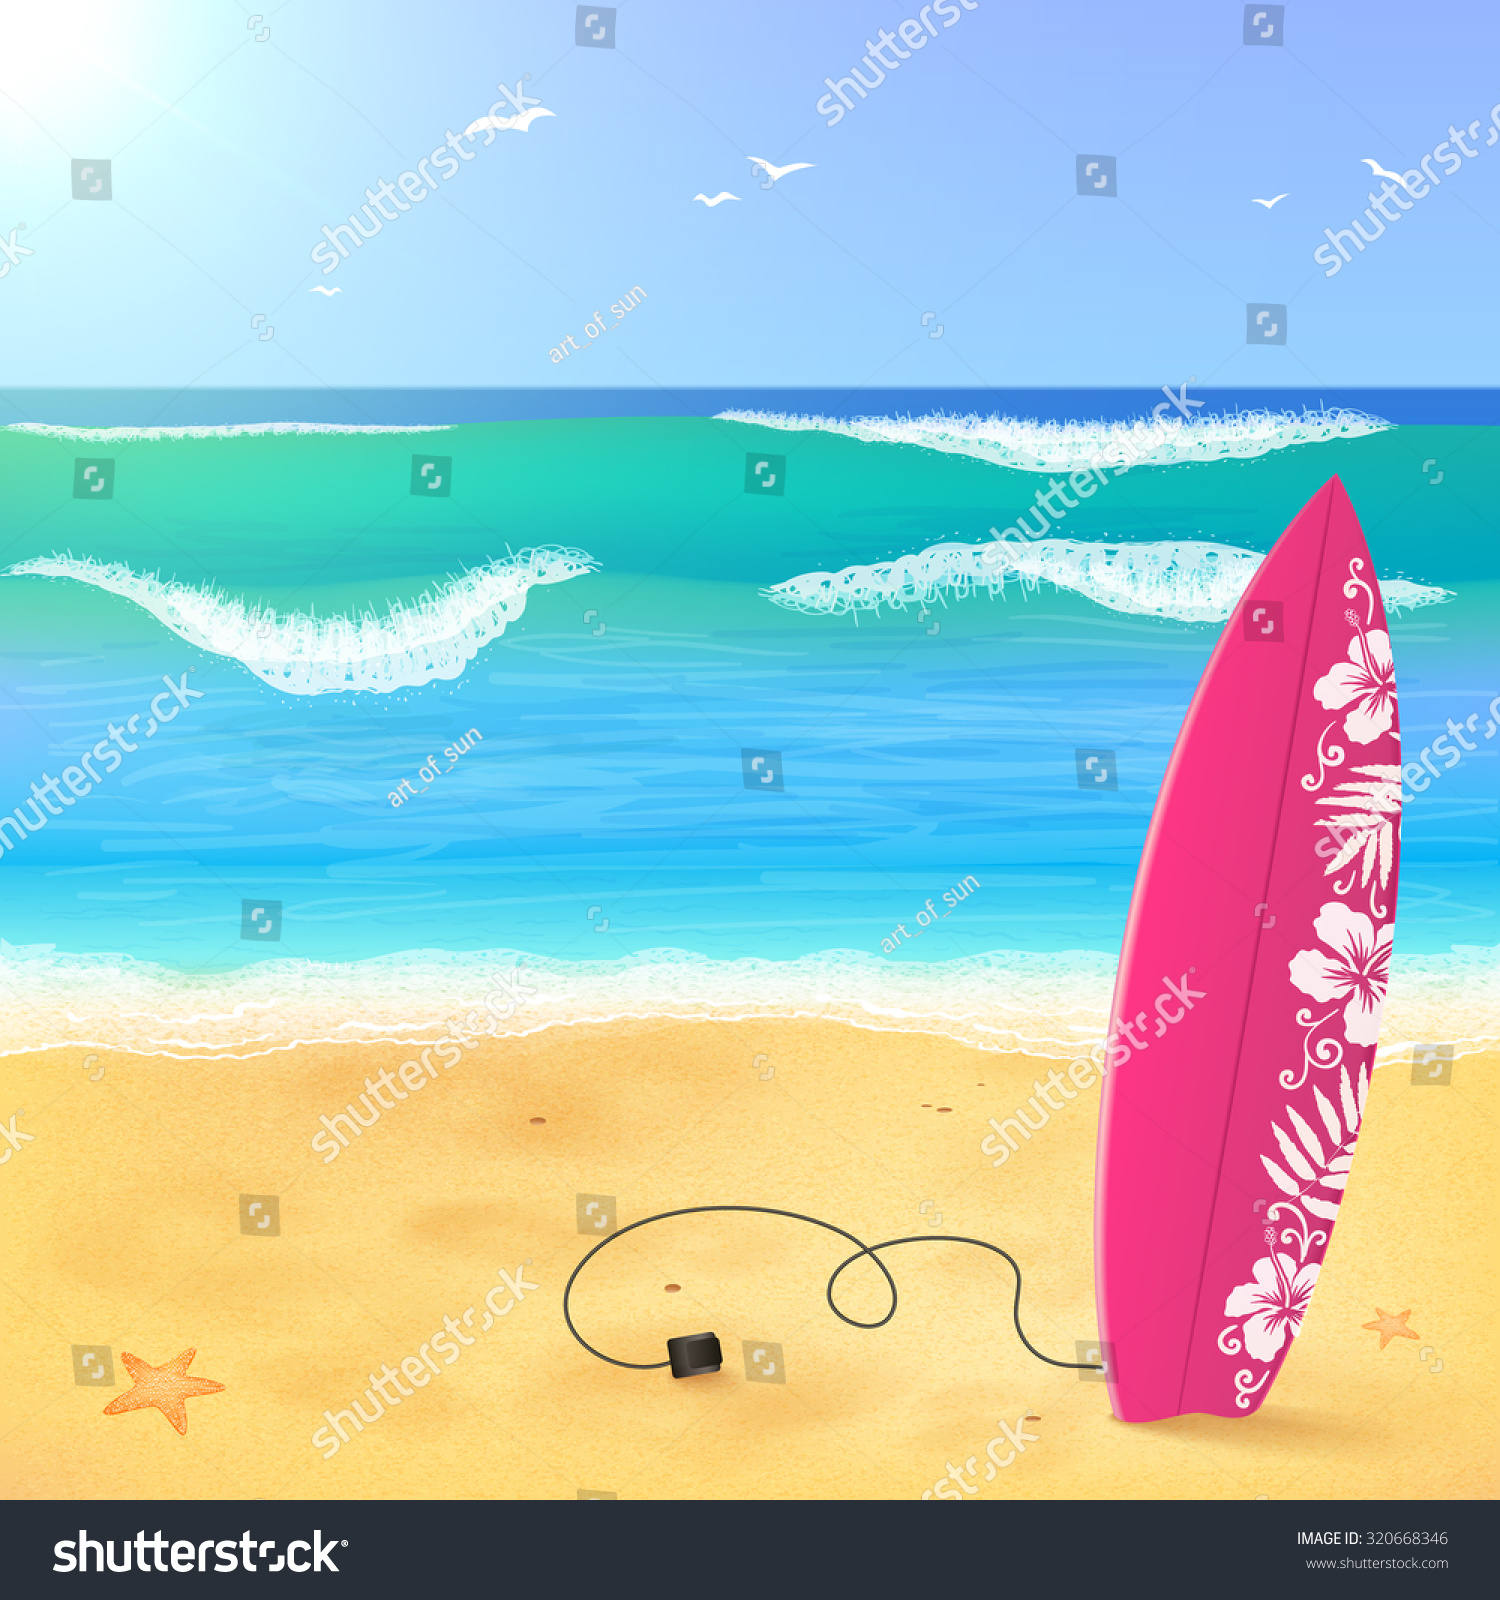 Pink surfing board on the beach with waves vector illustration